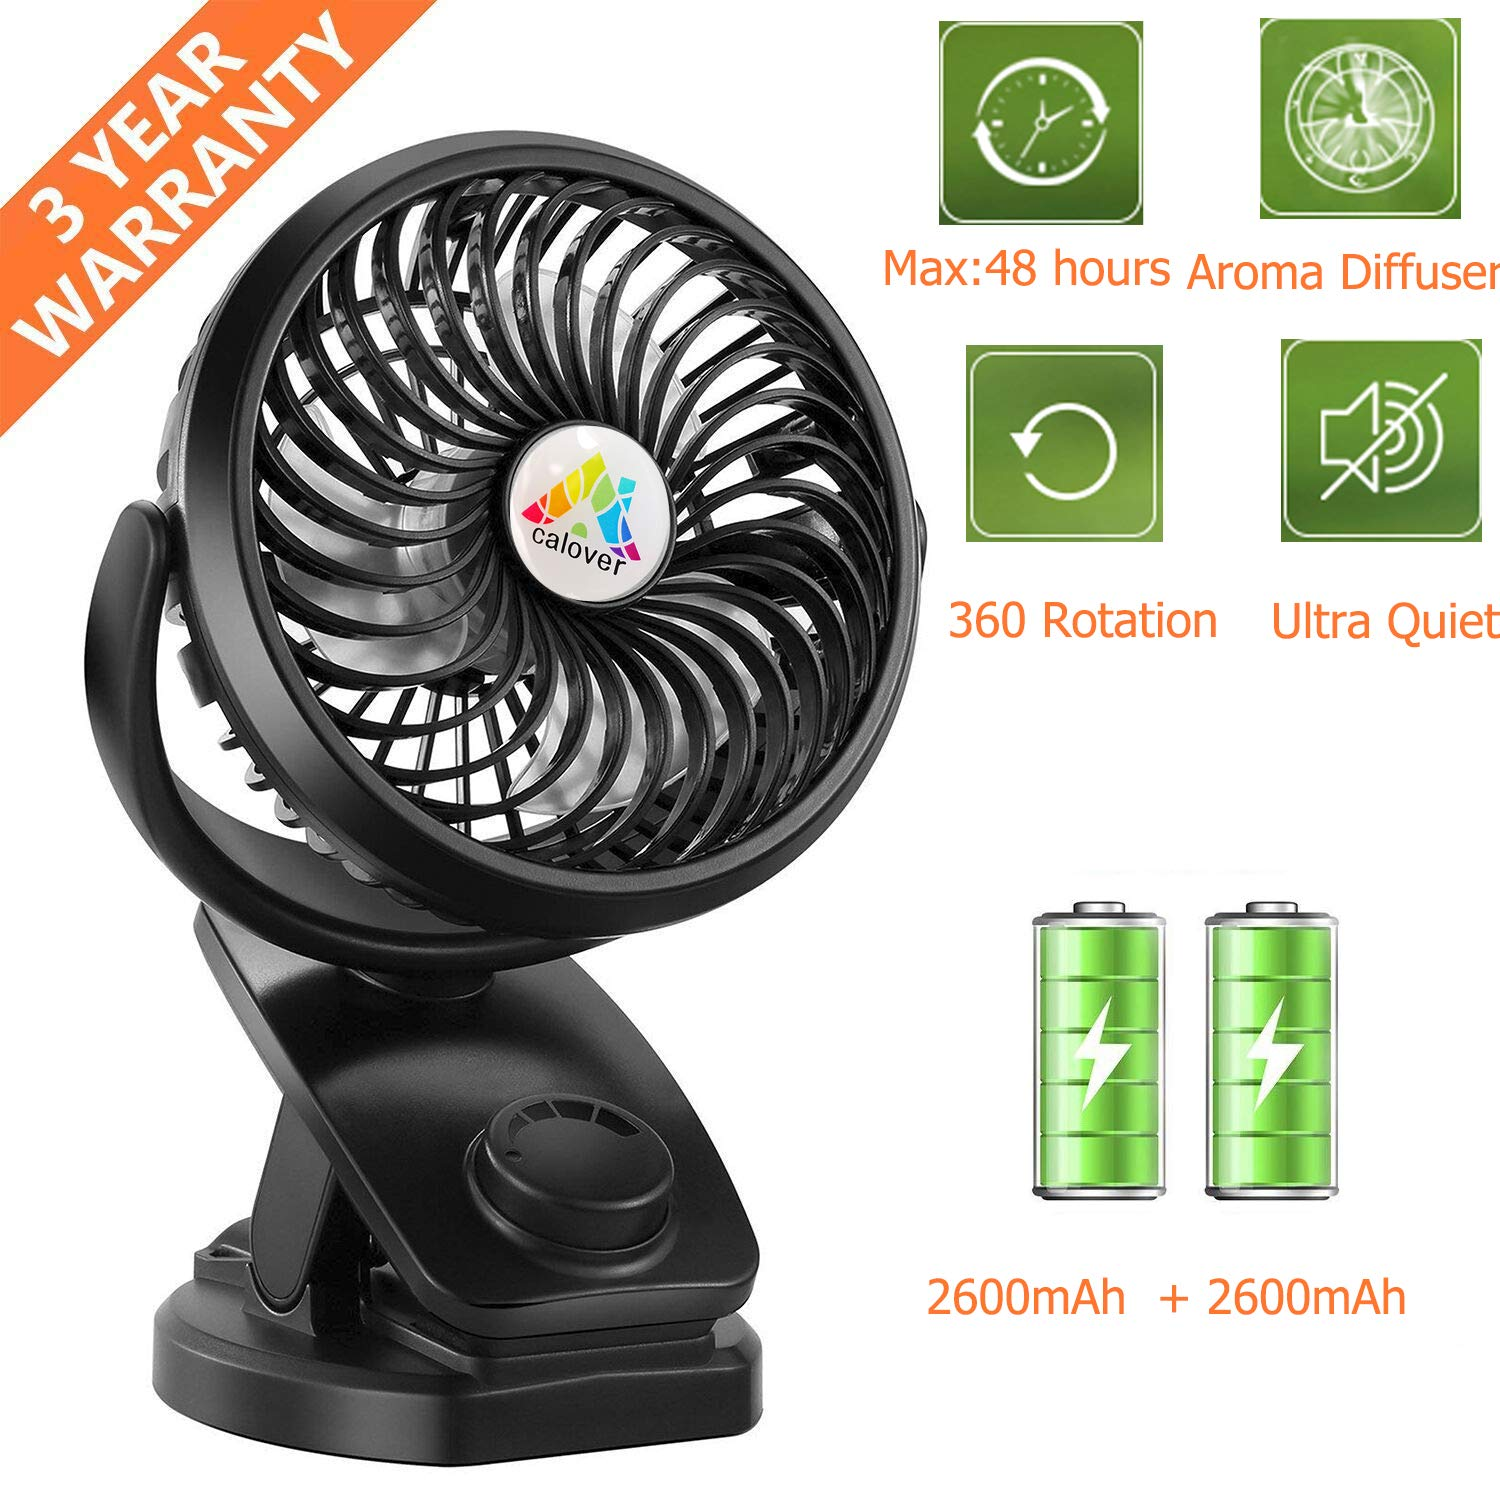 CALOVER Battery Operated Clip on Stroller Fan – 45 Hours Portable Mini Desk Table Fan with Rechargeable 5200 mAH Battery, USB Powered Fan for Baby Stroller Indoor Outdoor Travel 2019 Upgrade